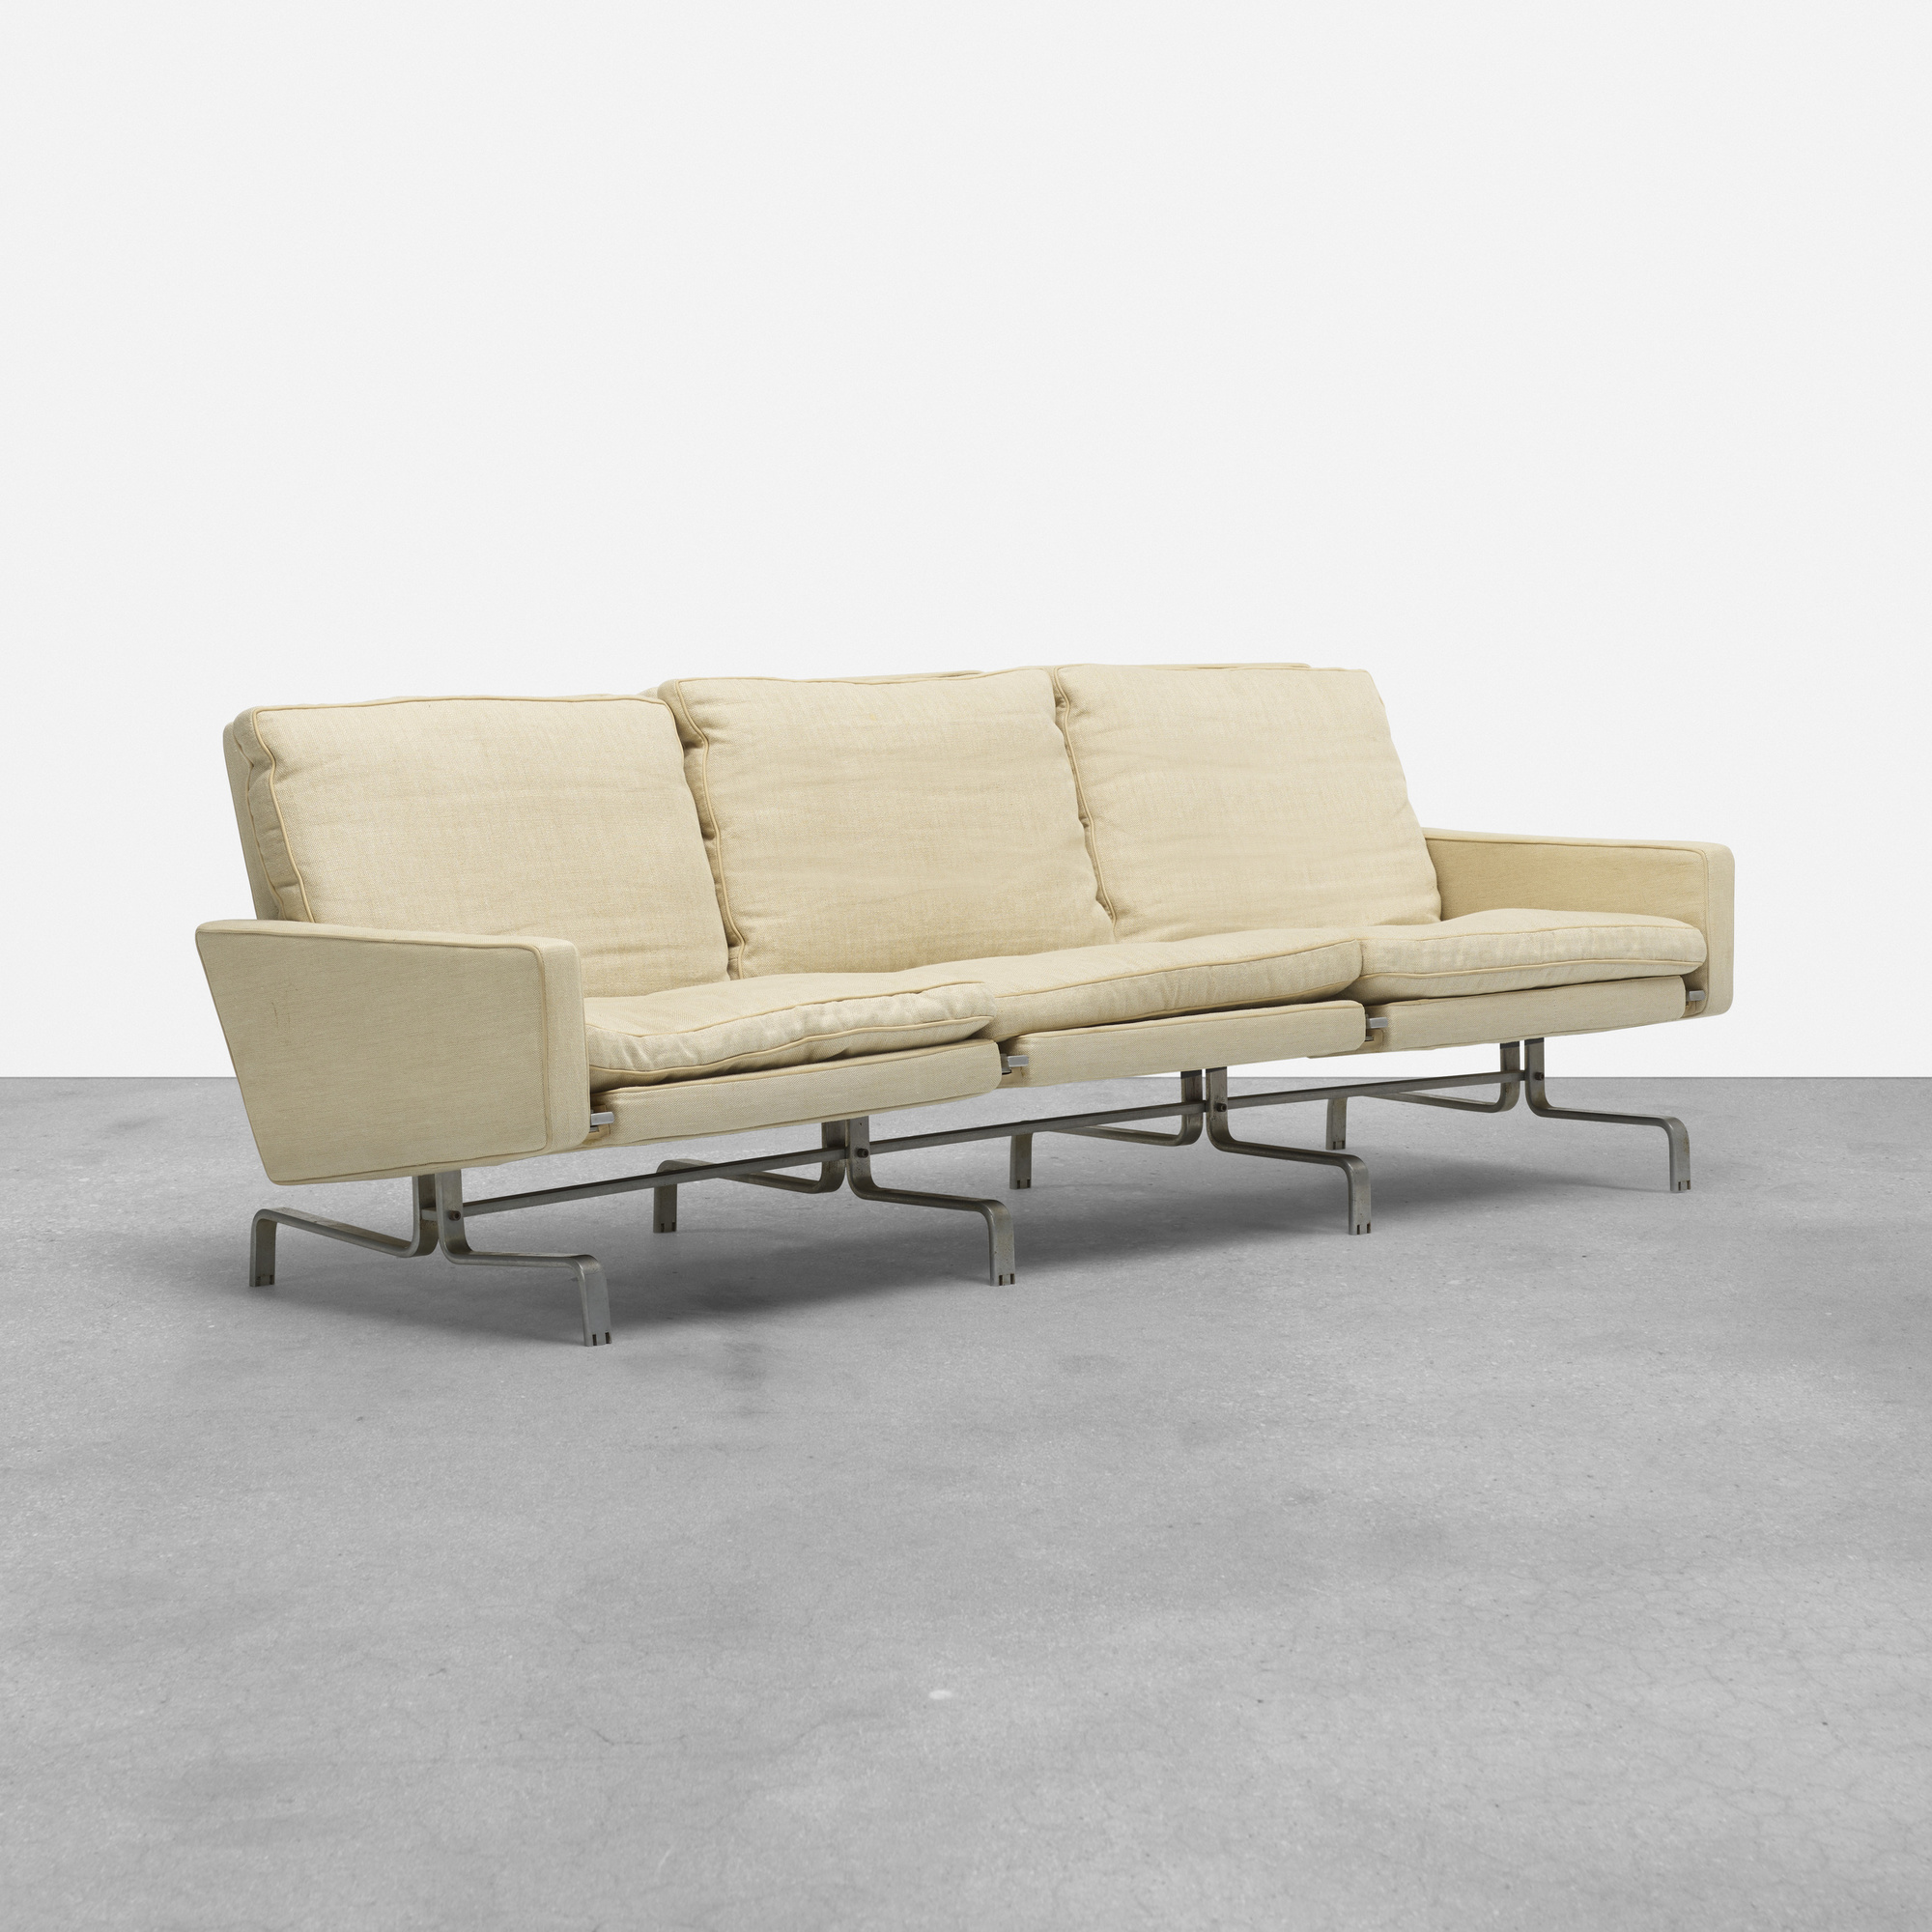 368 Poul Kjaerholm Pk 31 3 Sofa 1 Of 4